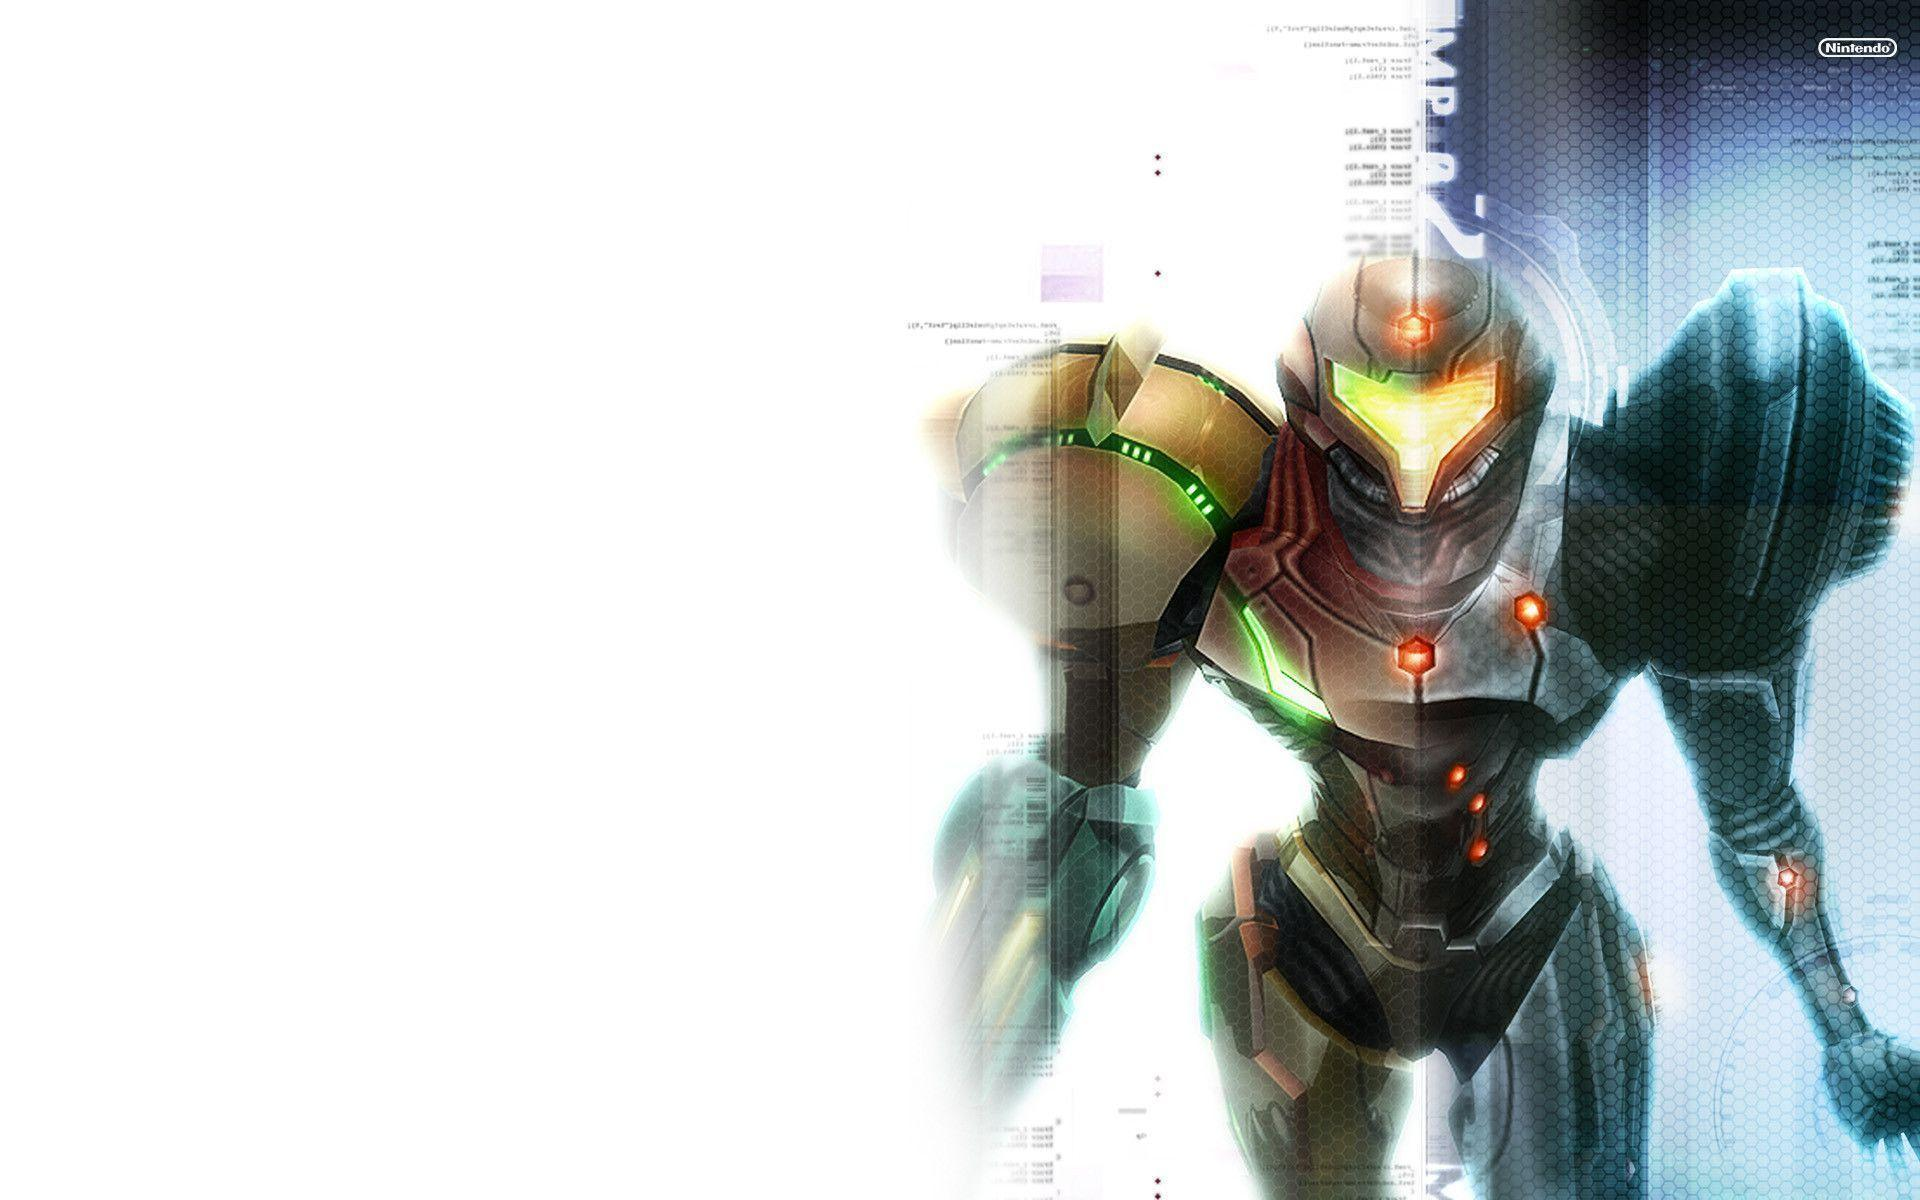 Can anyone find the source/creator for this amazing Samus